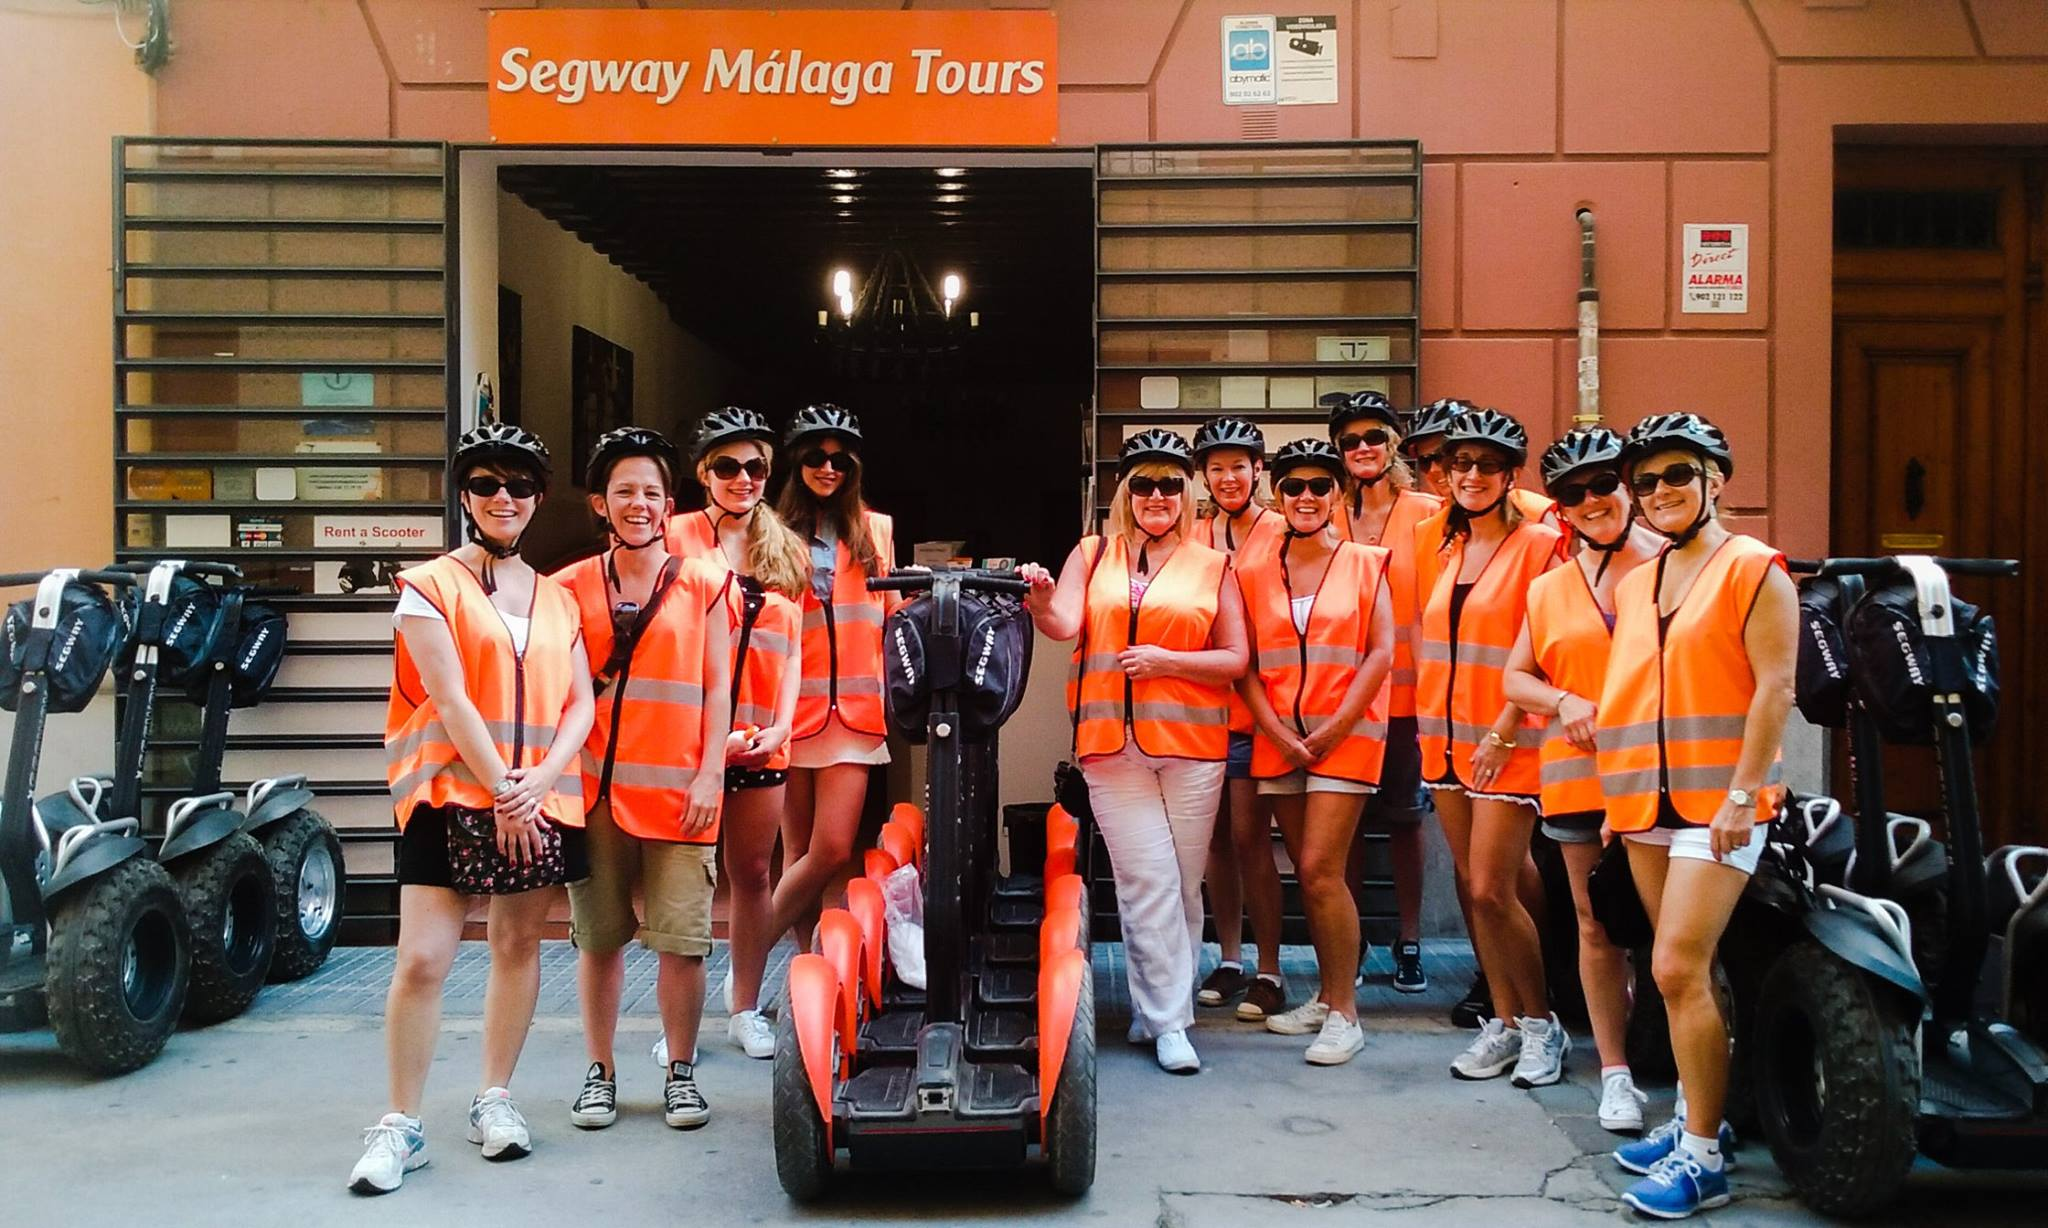 Segway Malaga Tours for professionalism